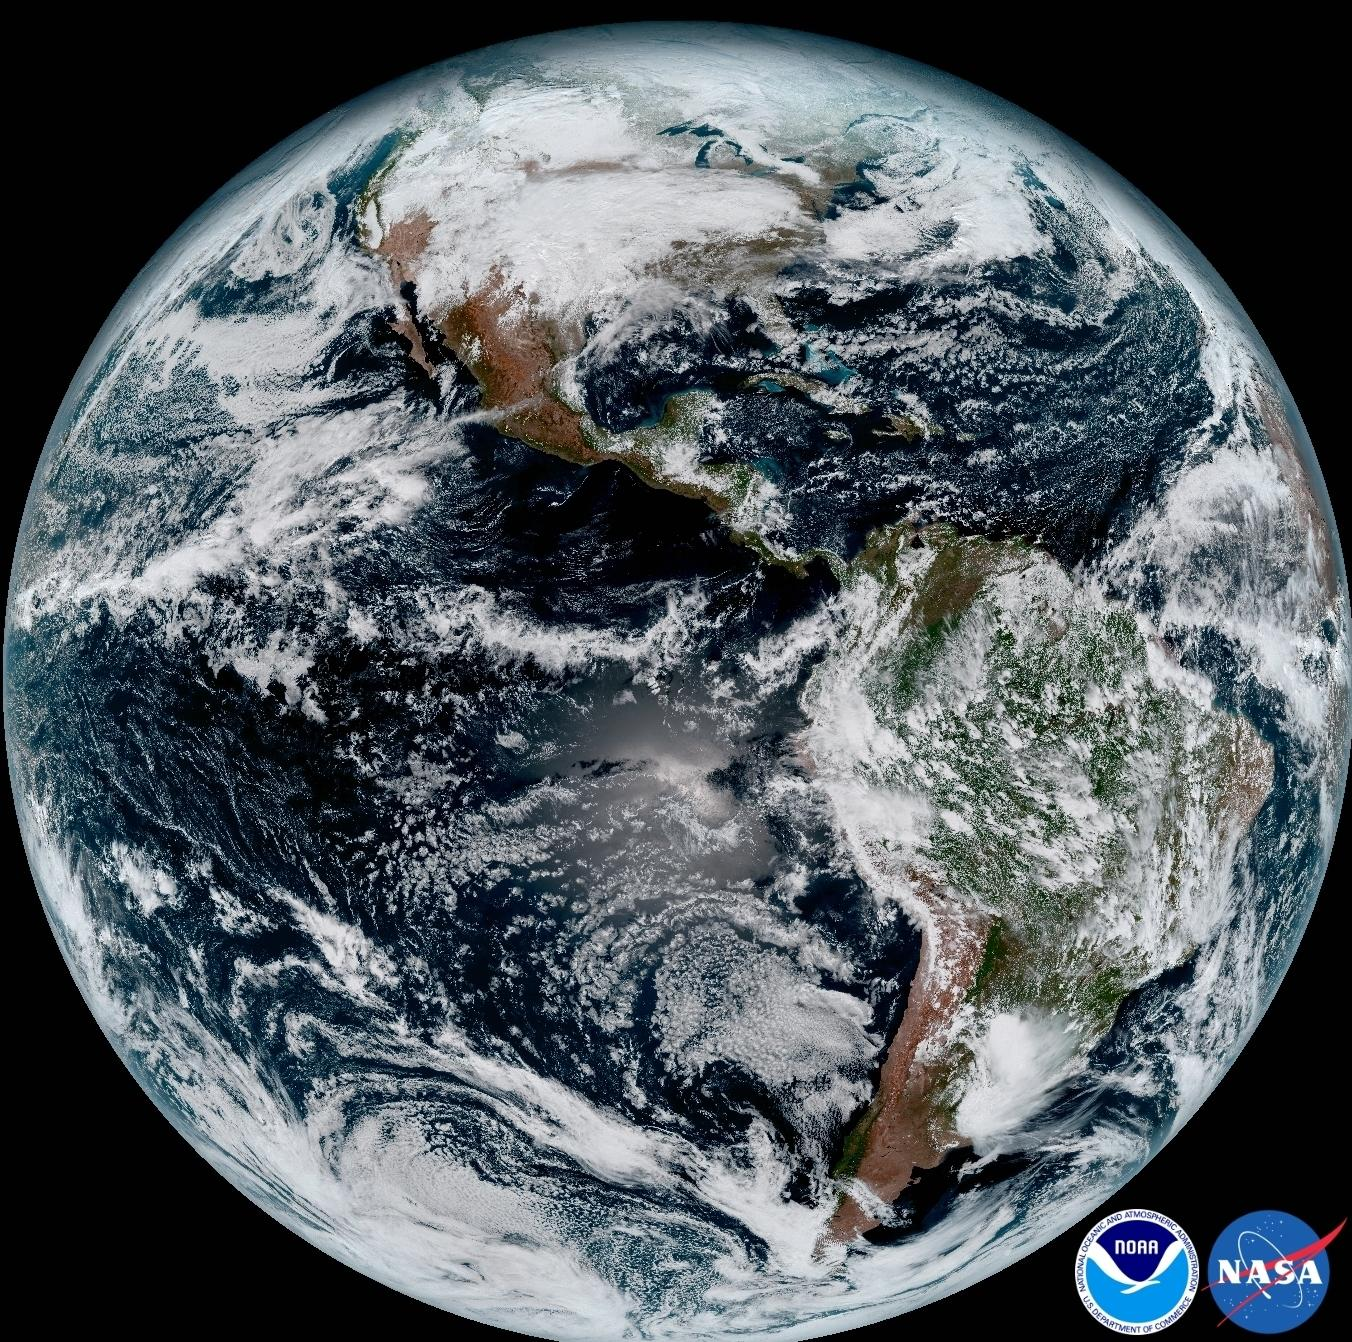 NOAA Releases First GOES 16 Image